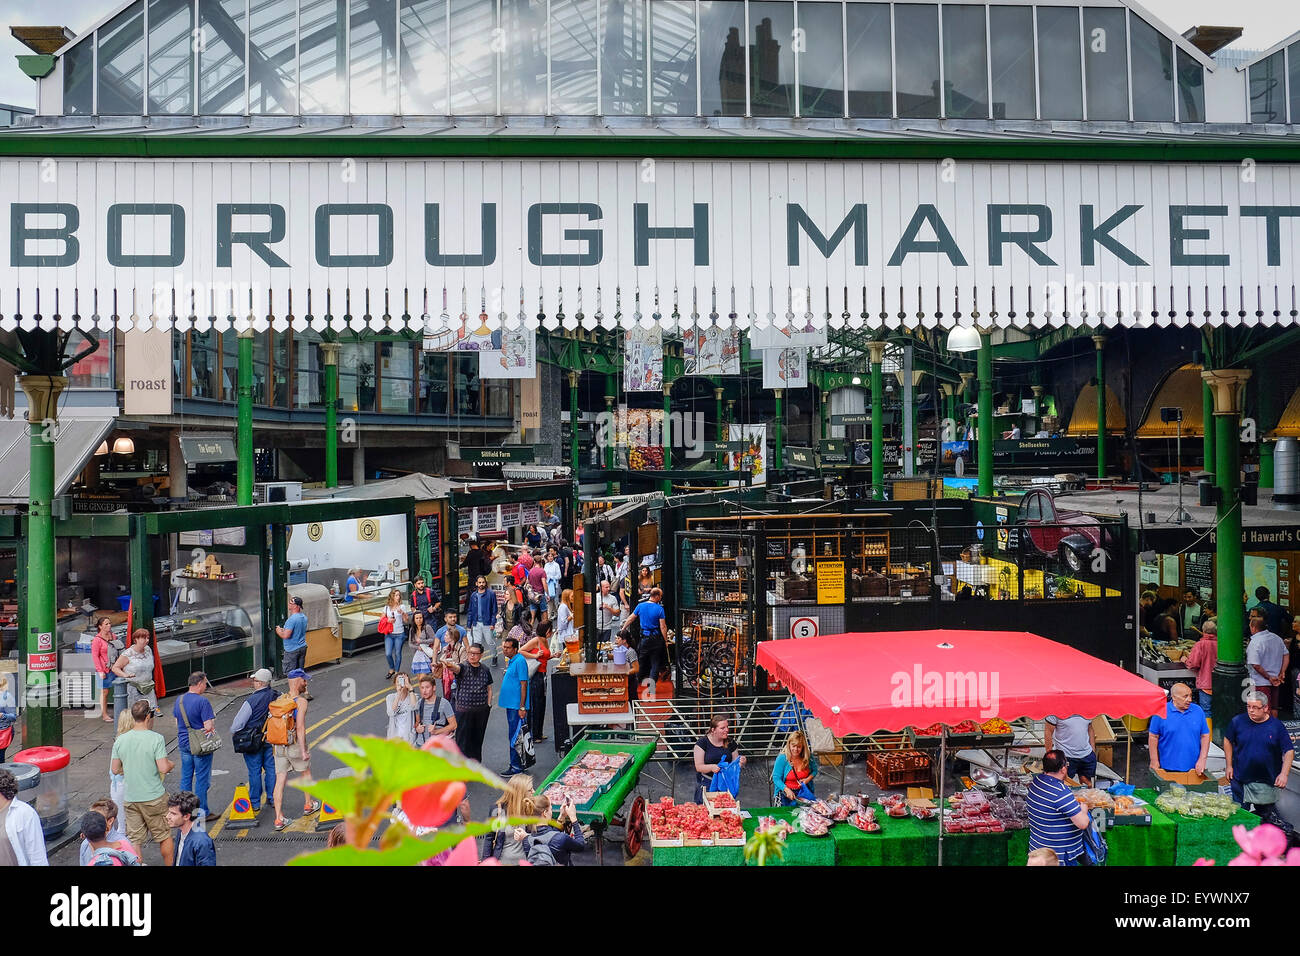 Borough Market in London. - Stock Image